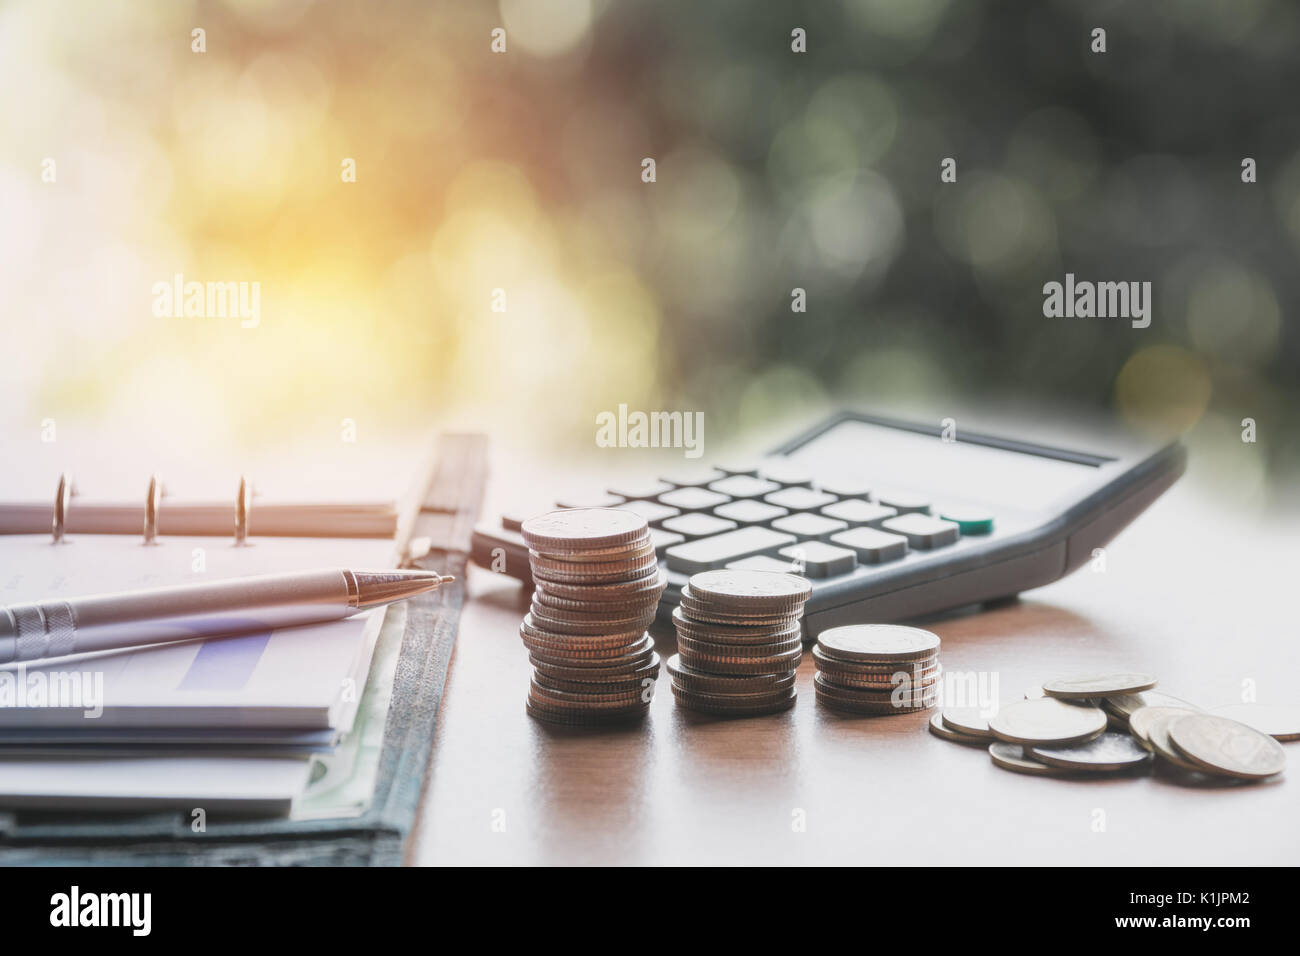 Saving money concept and money coin stack growing for business concept. - Stock Image